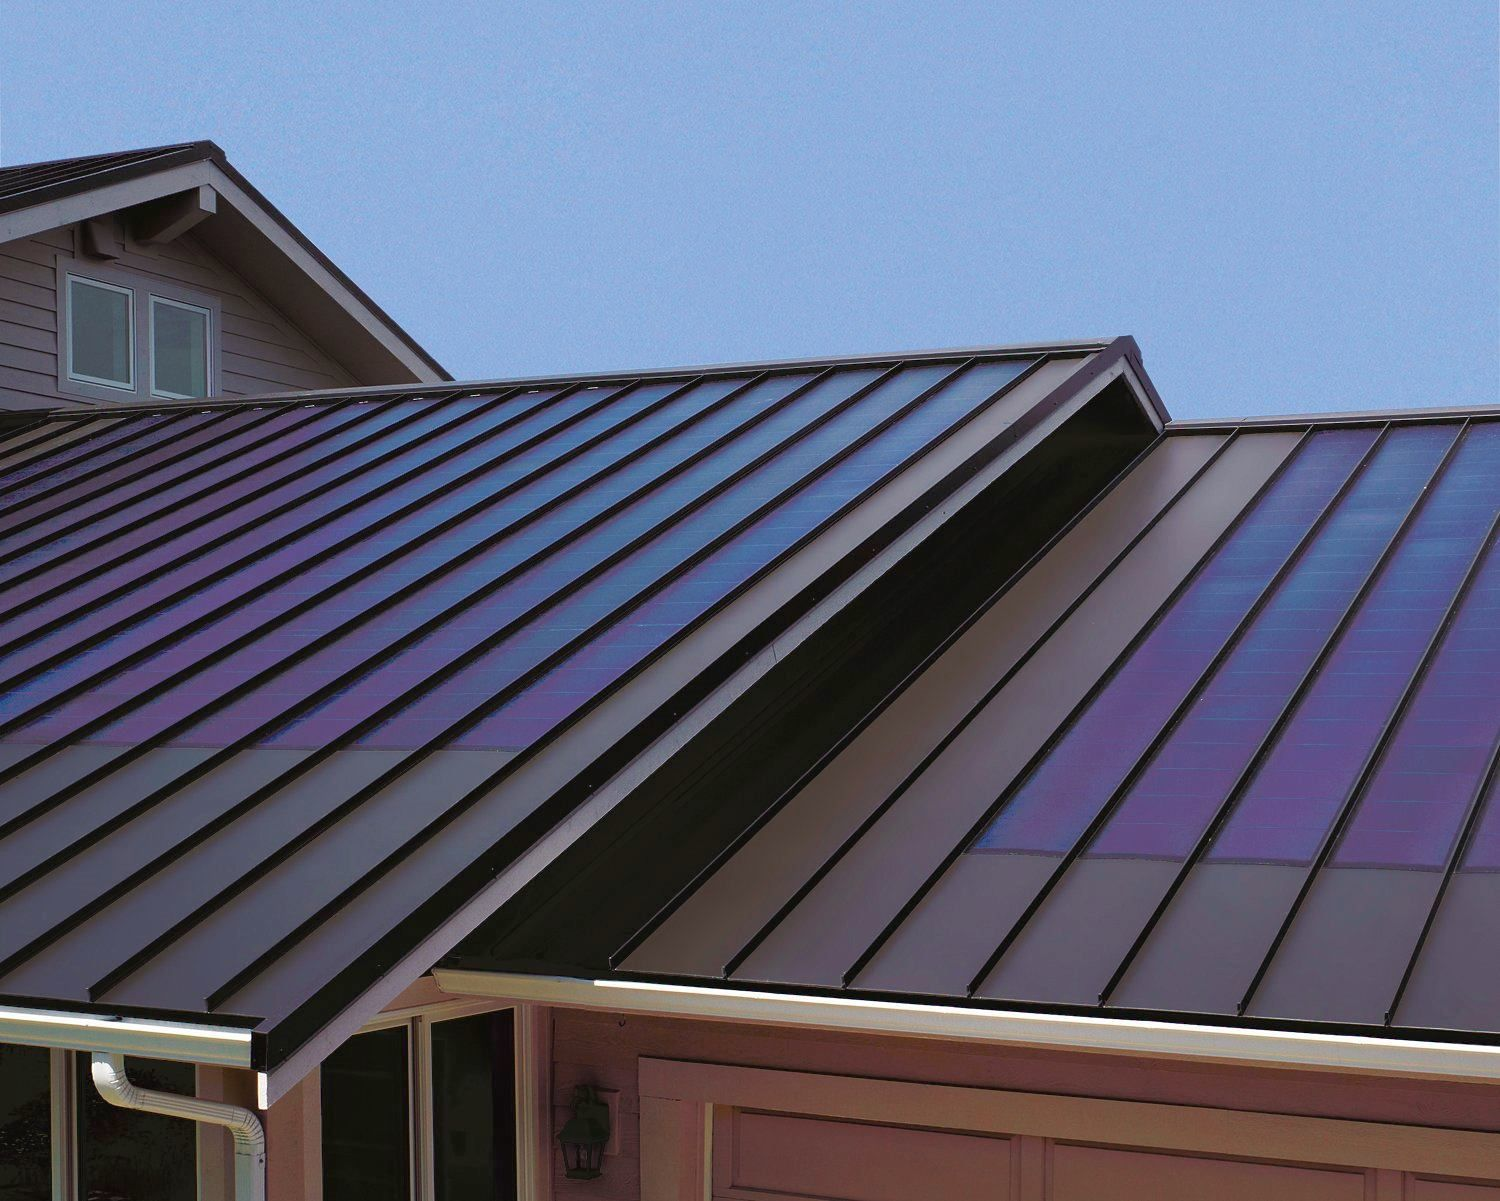 The FusionSolar solar system includes thinfilm